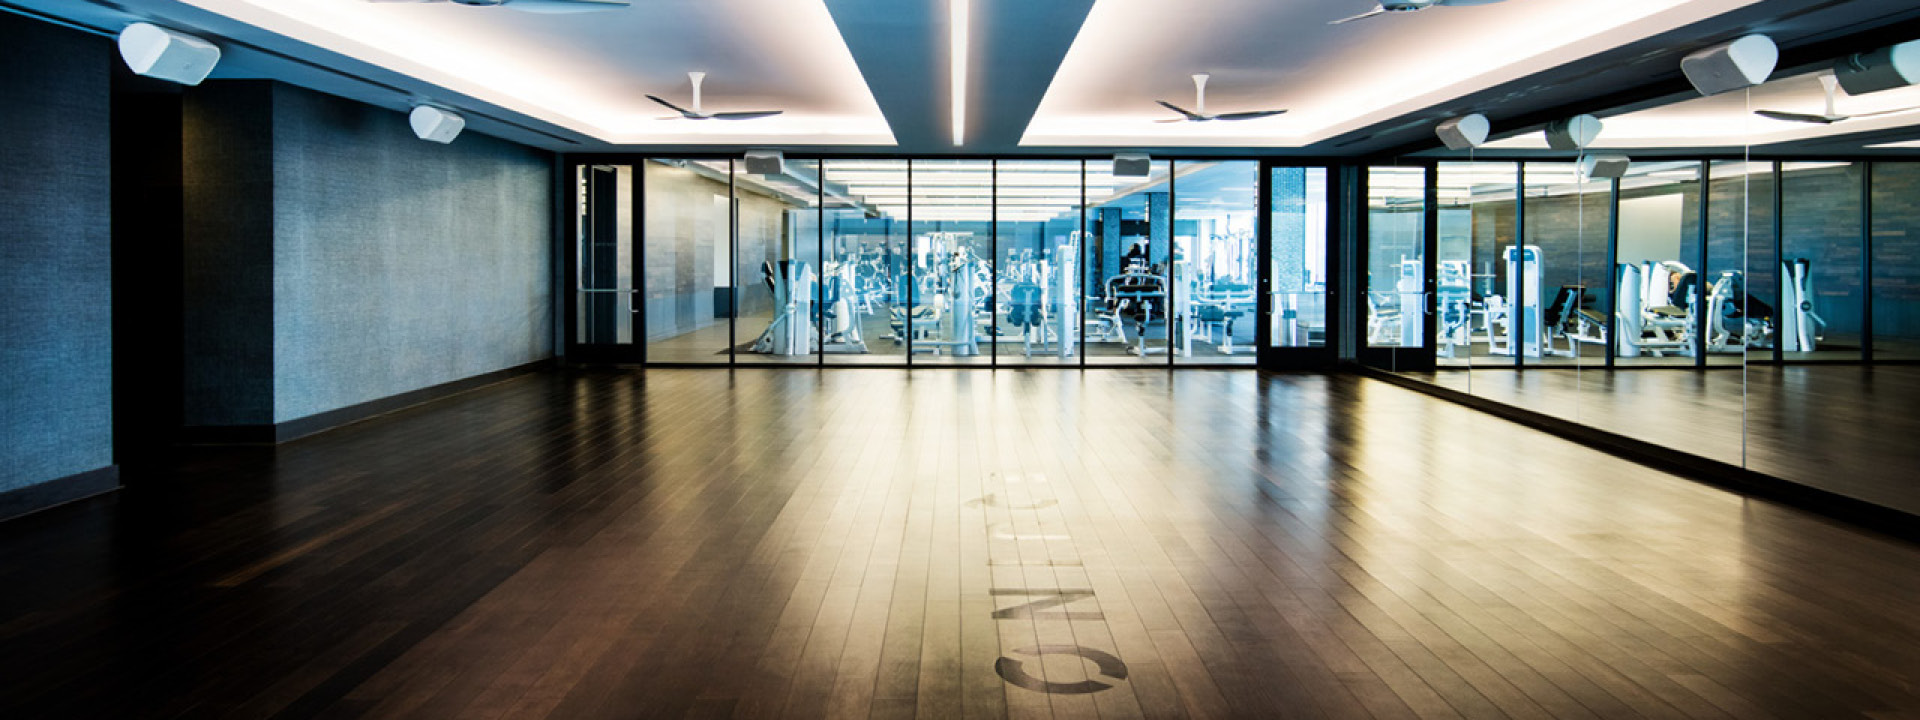 houston fitness clubs  luxury gyms at equinox locations